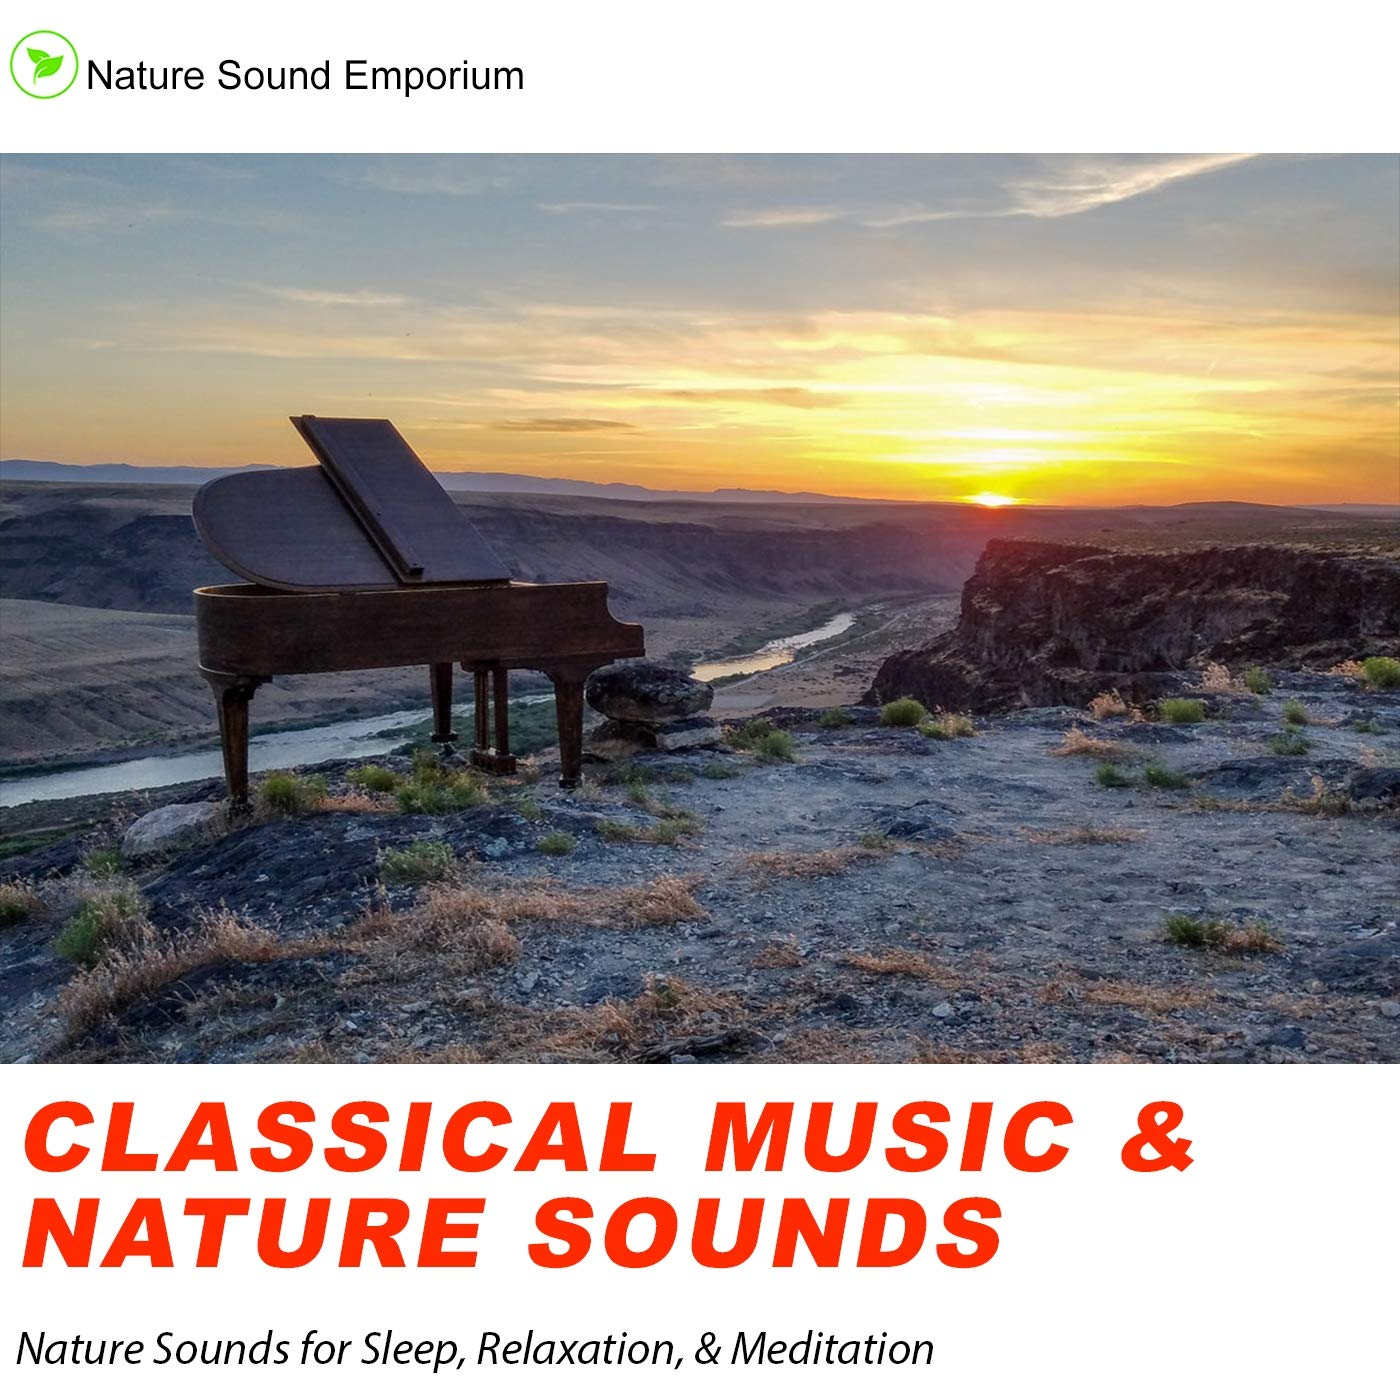 Classical Music And Nature Sounds - Liszt & Chopin Piano Concertos For Sleep & Relaxation - Natu